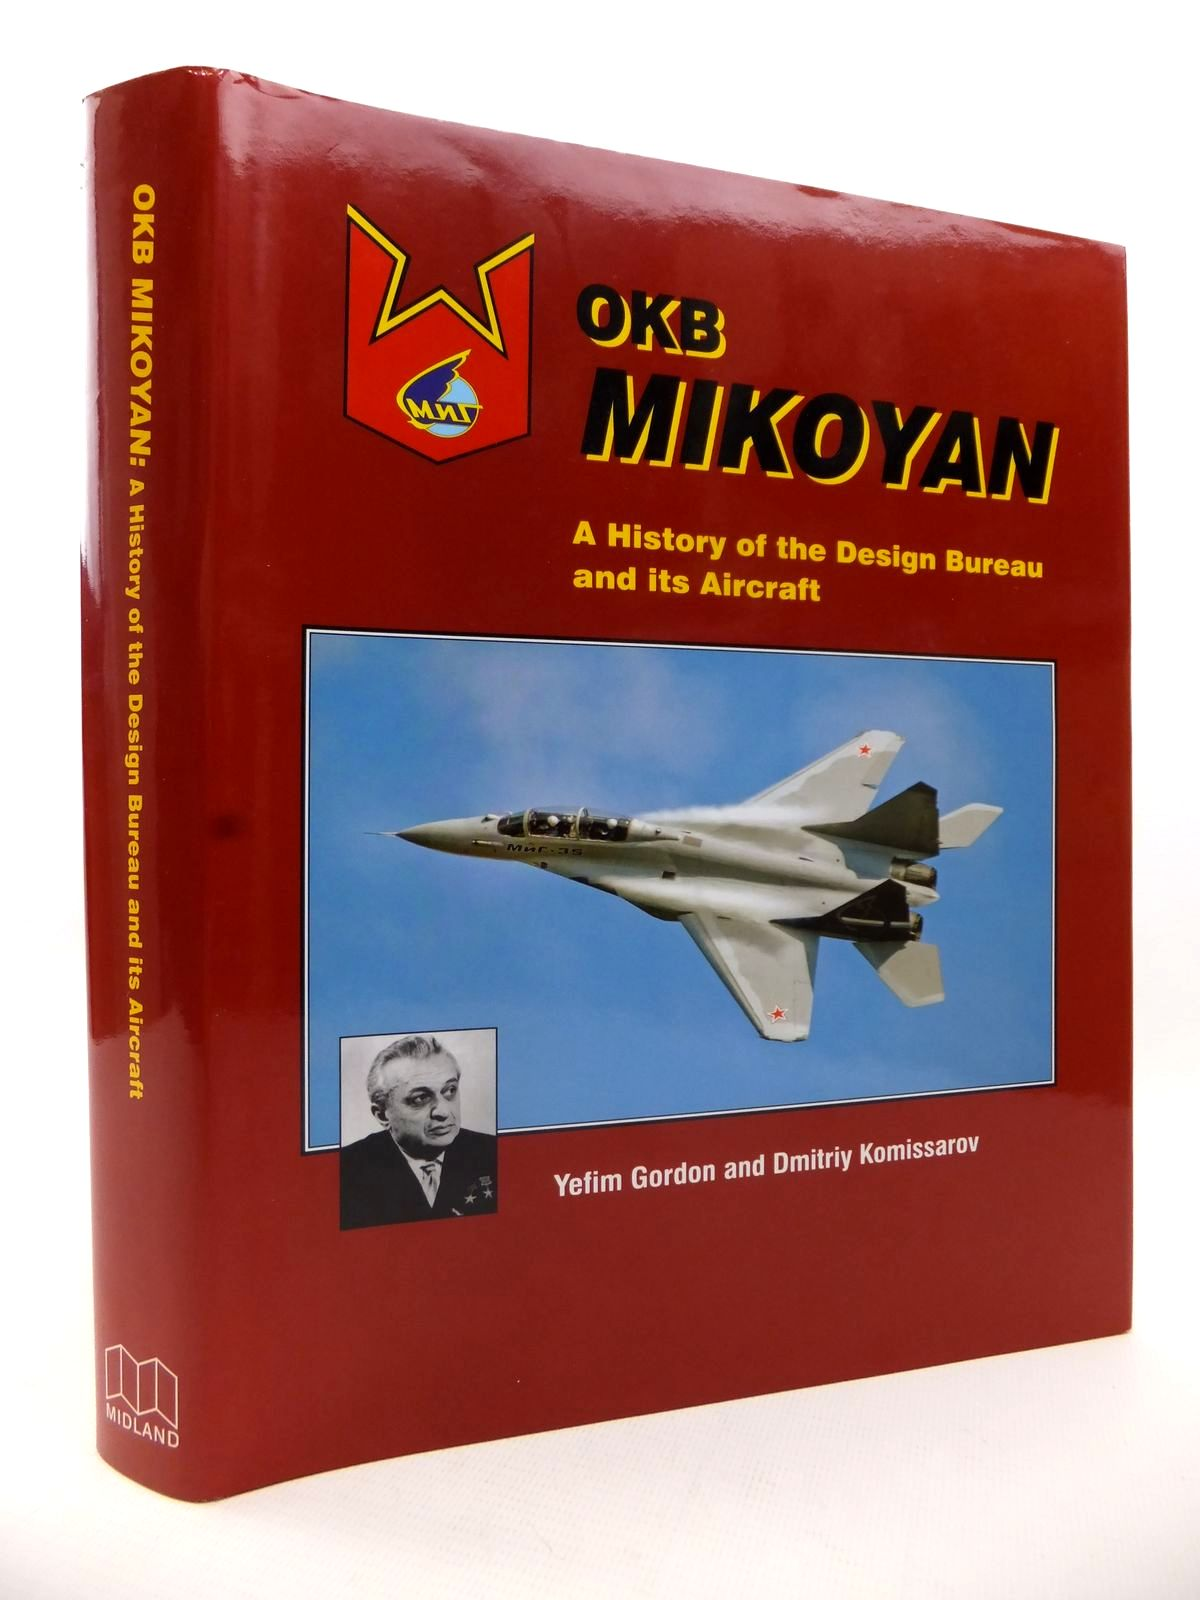 Photo of OKB MIKOYAN A HISTORY OF THE DESIGN BUREAU AND ITS AIRCRAFT written by Gordon, Yefim<br />Komissarov, Dmitriy published by Midland Publishing (STOCK CODE: 1813109)  for sale by Stella & Rose's Books